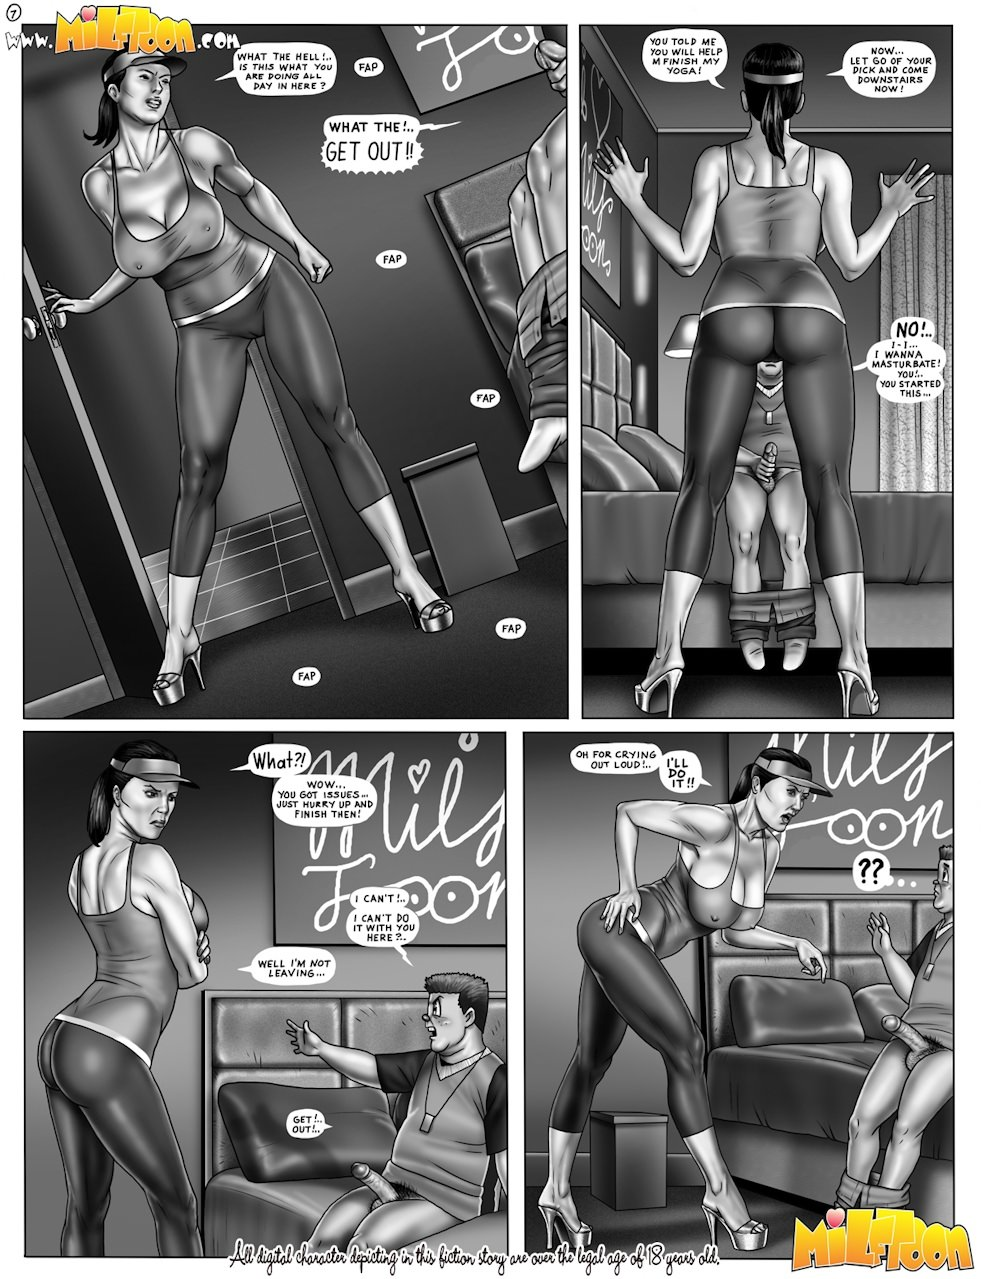 Porno gta5 cartoon download